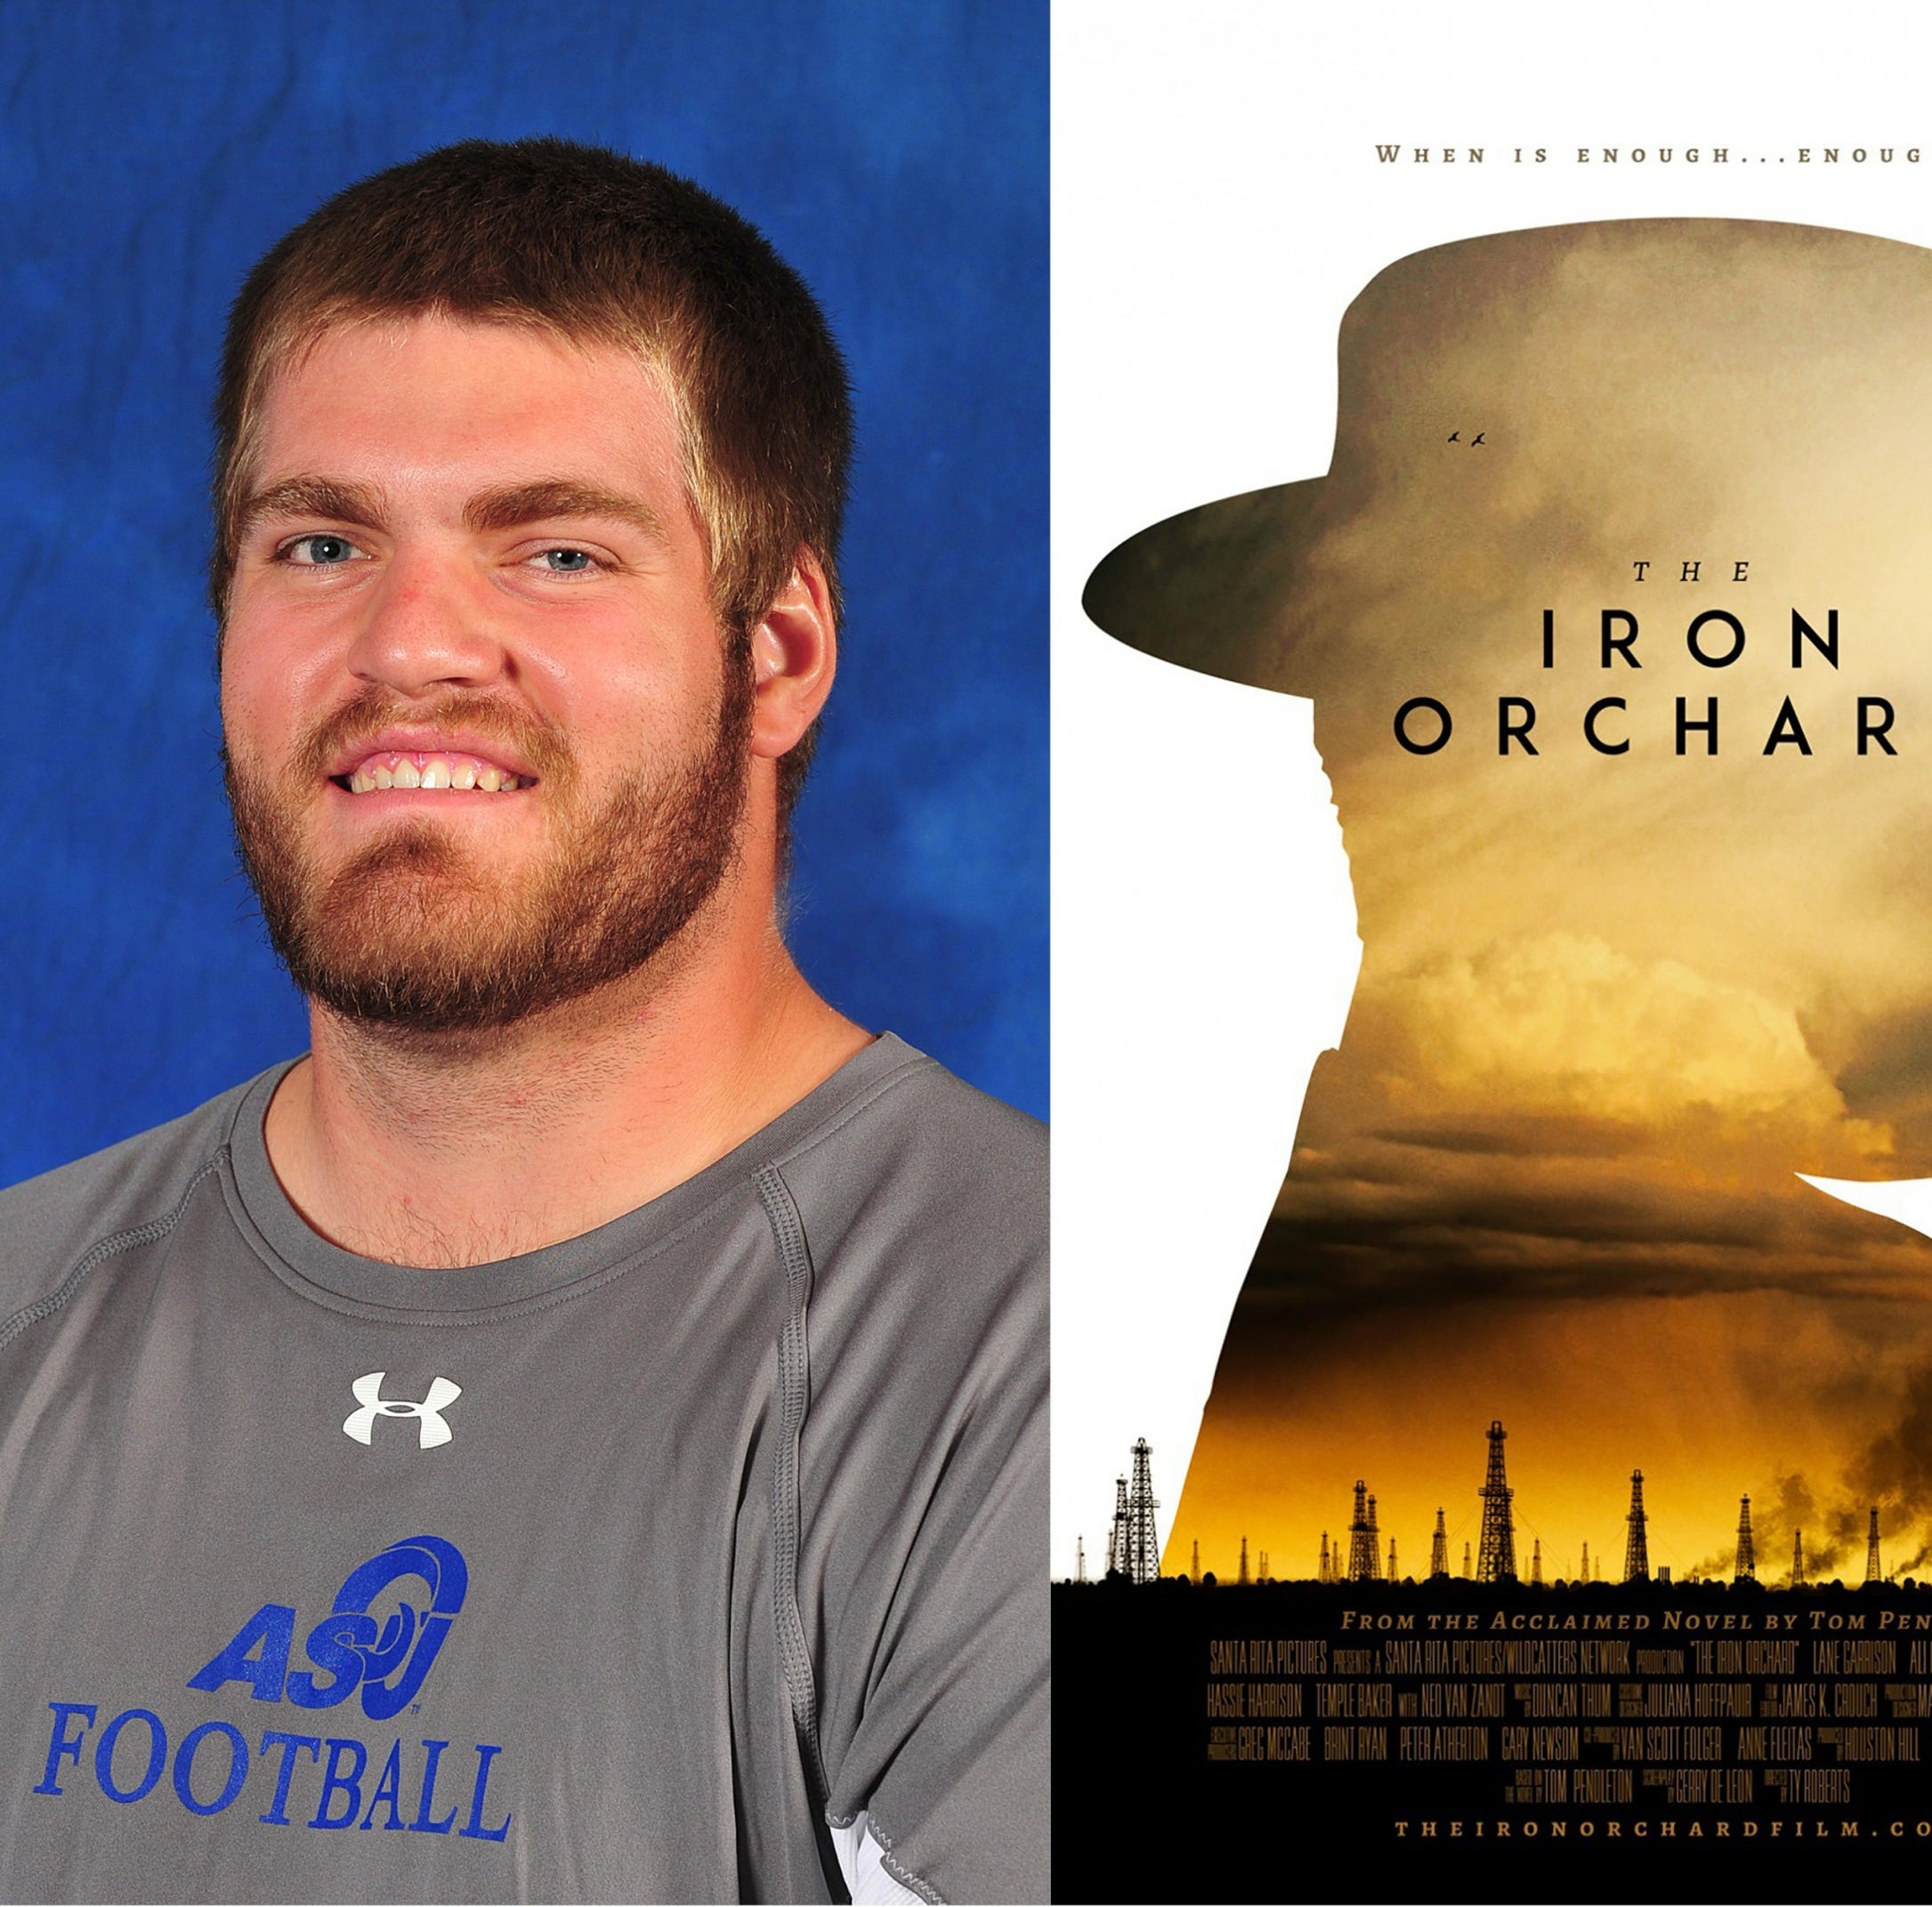 Former Angelo State football player makes acting debut in award-winning movie